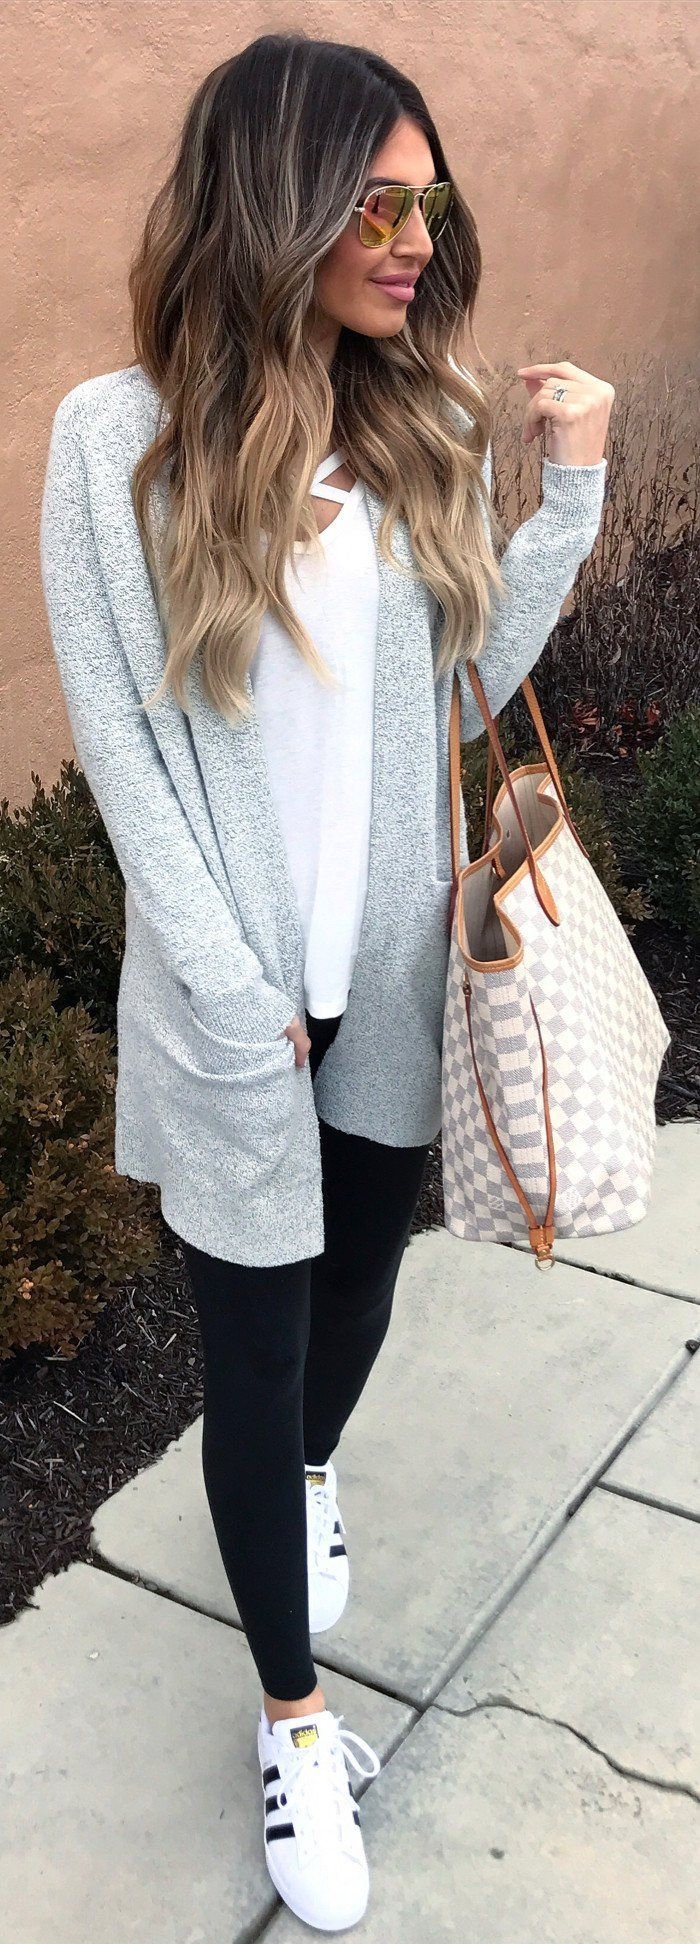 29 Best Fall Looks Images On Pinterest Winter Autumn And Clarette Sandals Clemence Gold Emas 40 100 How To Style White Sneakers